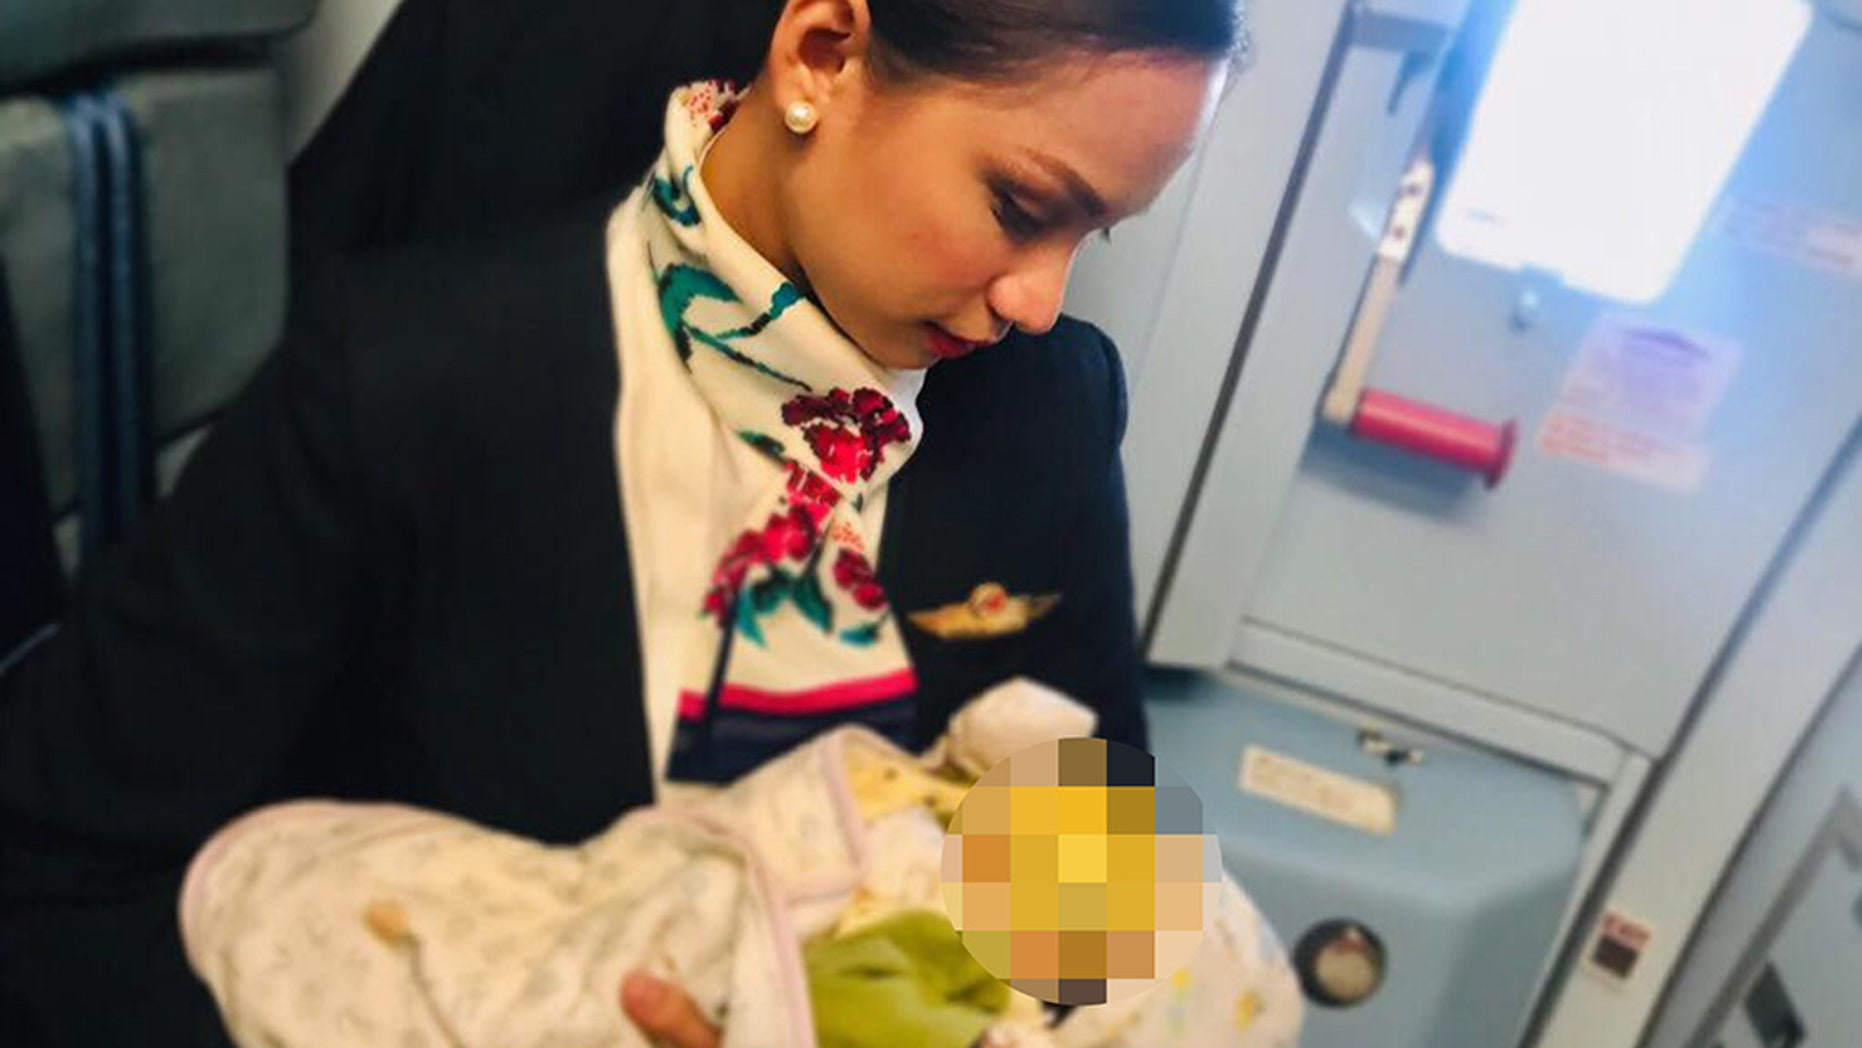 Patrisha Organo, 24, breastfeeding a strangers child during a flight.